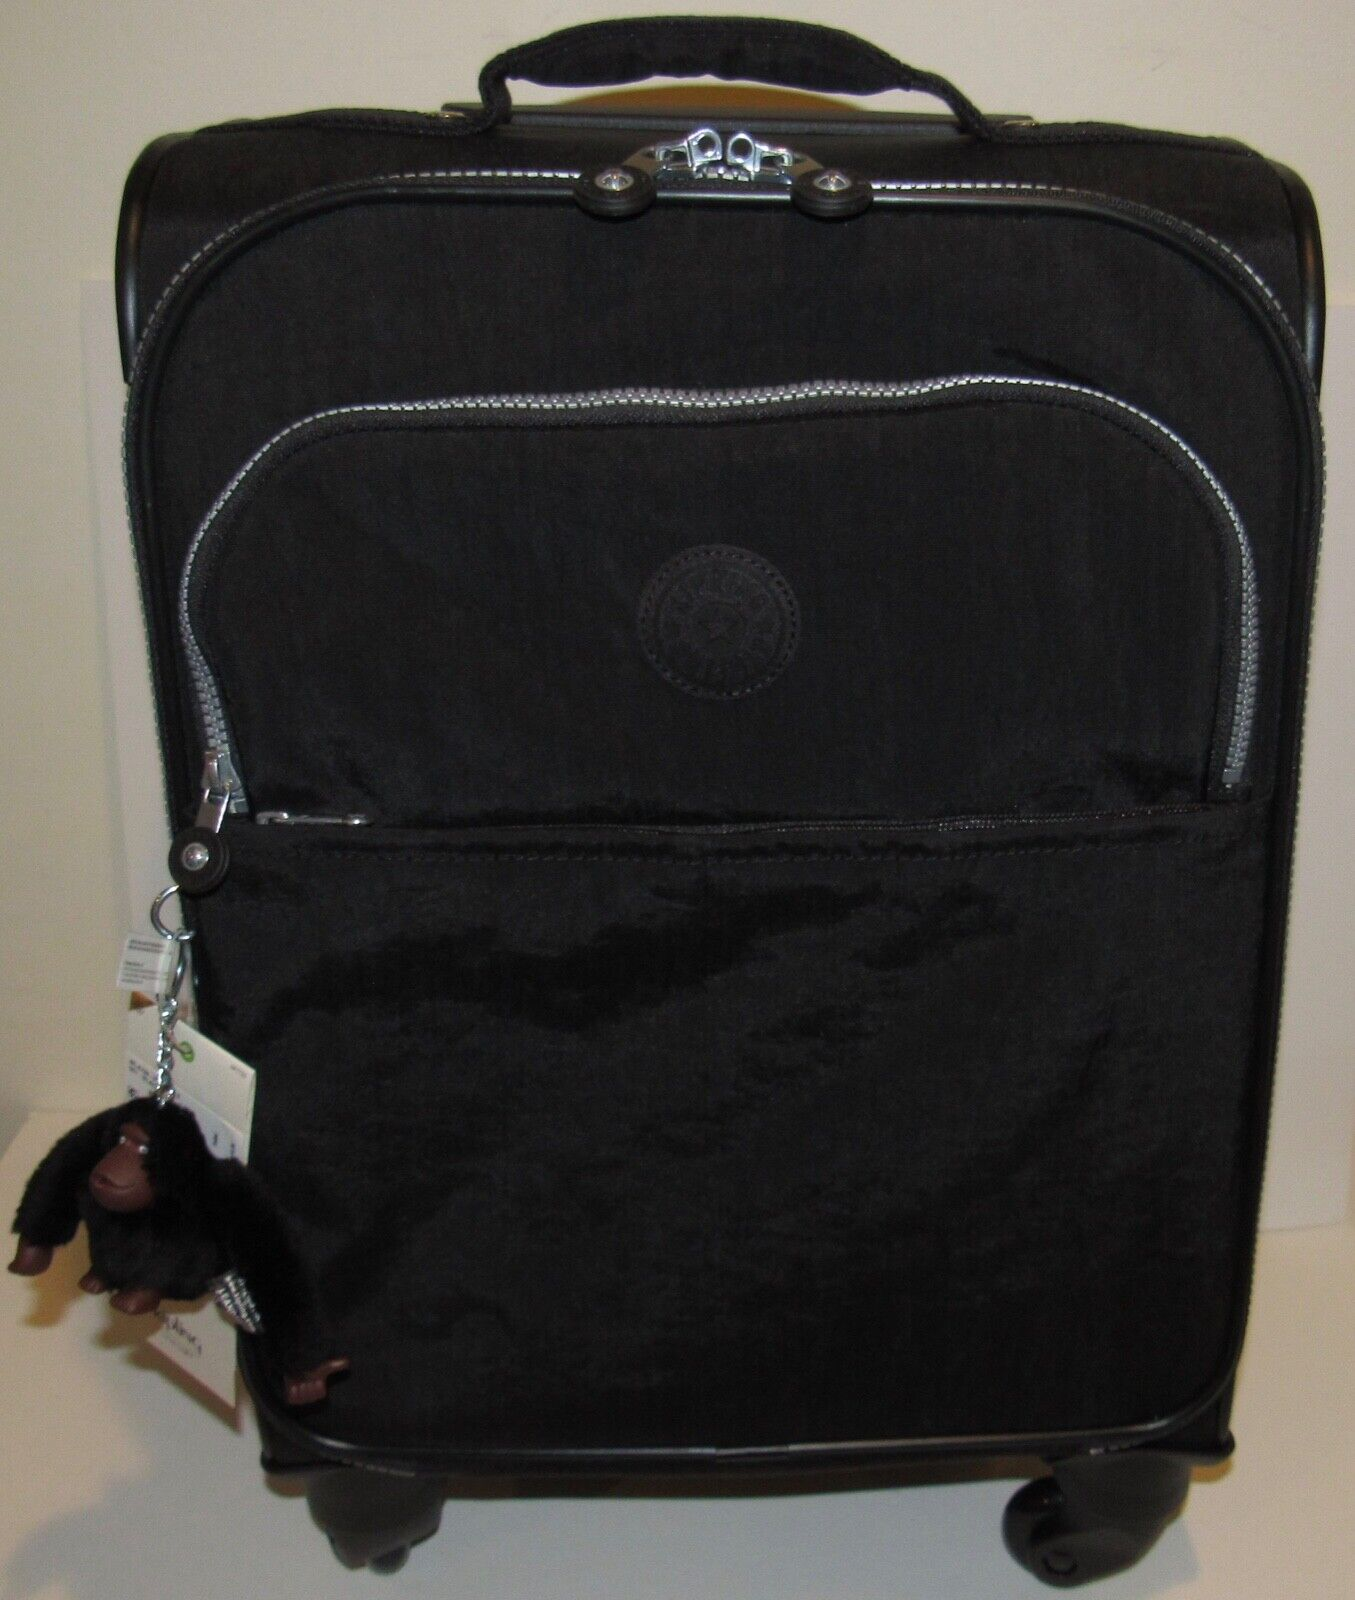 22 inch carry on rolling suitcase black